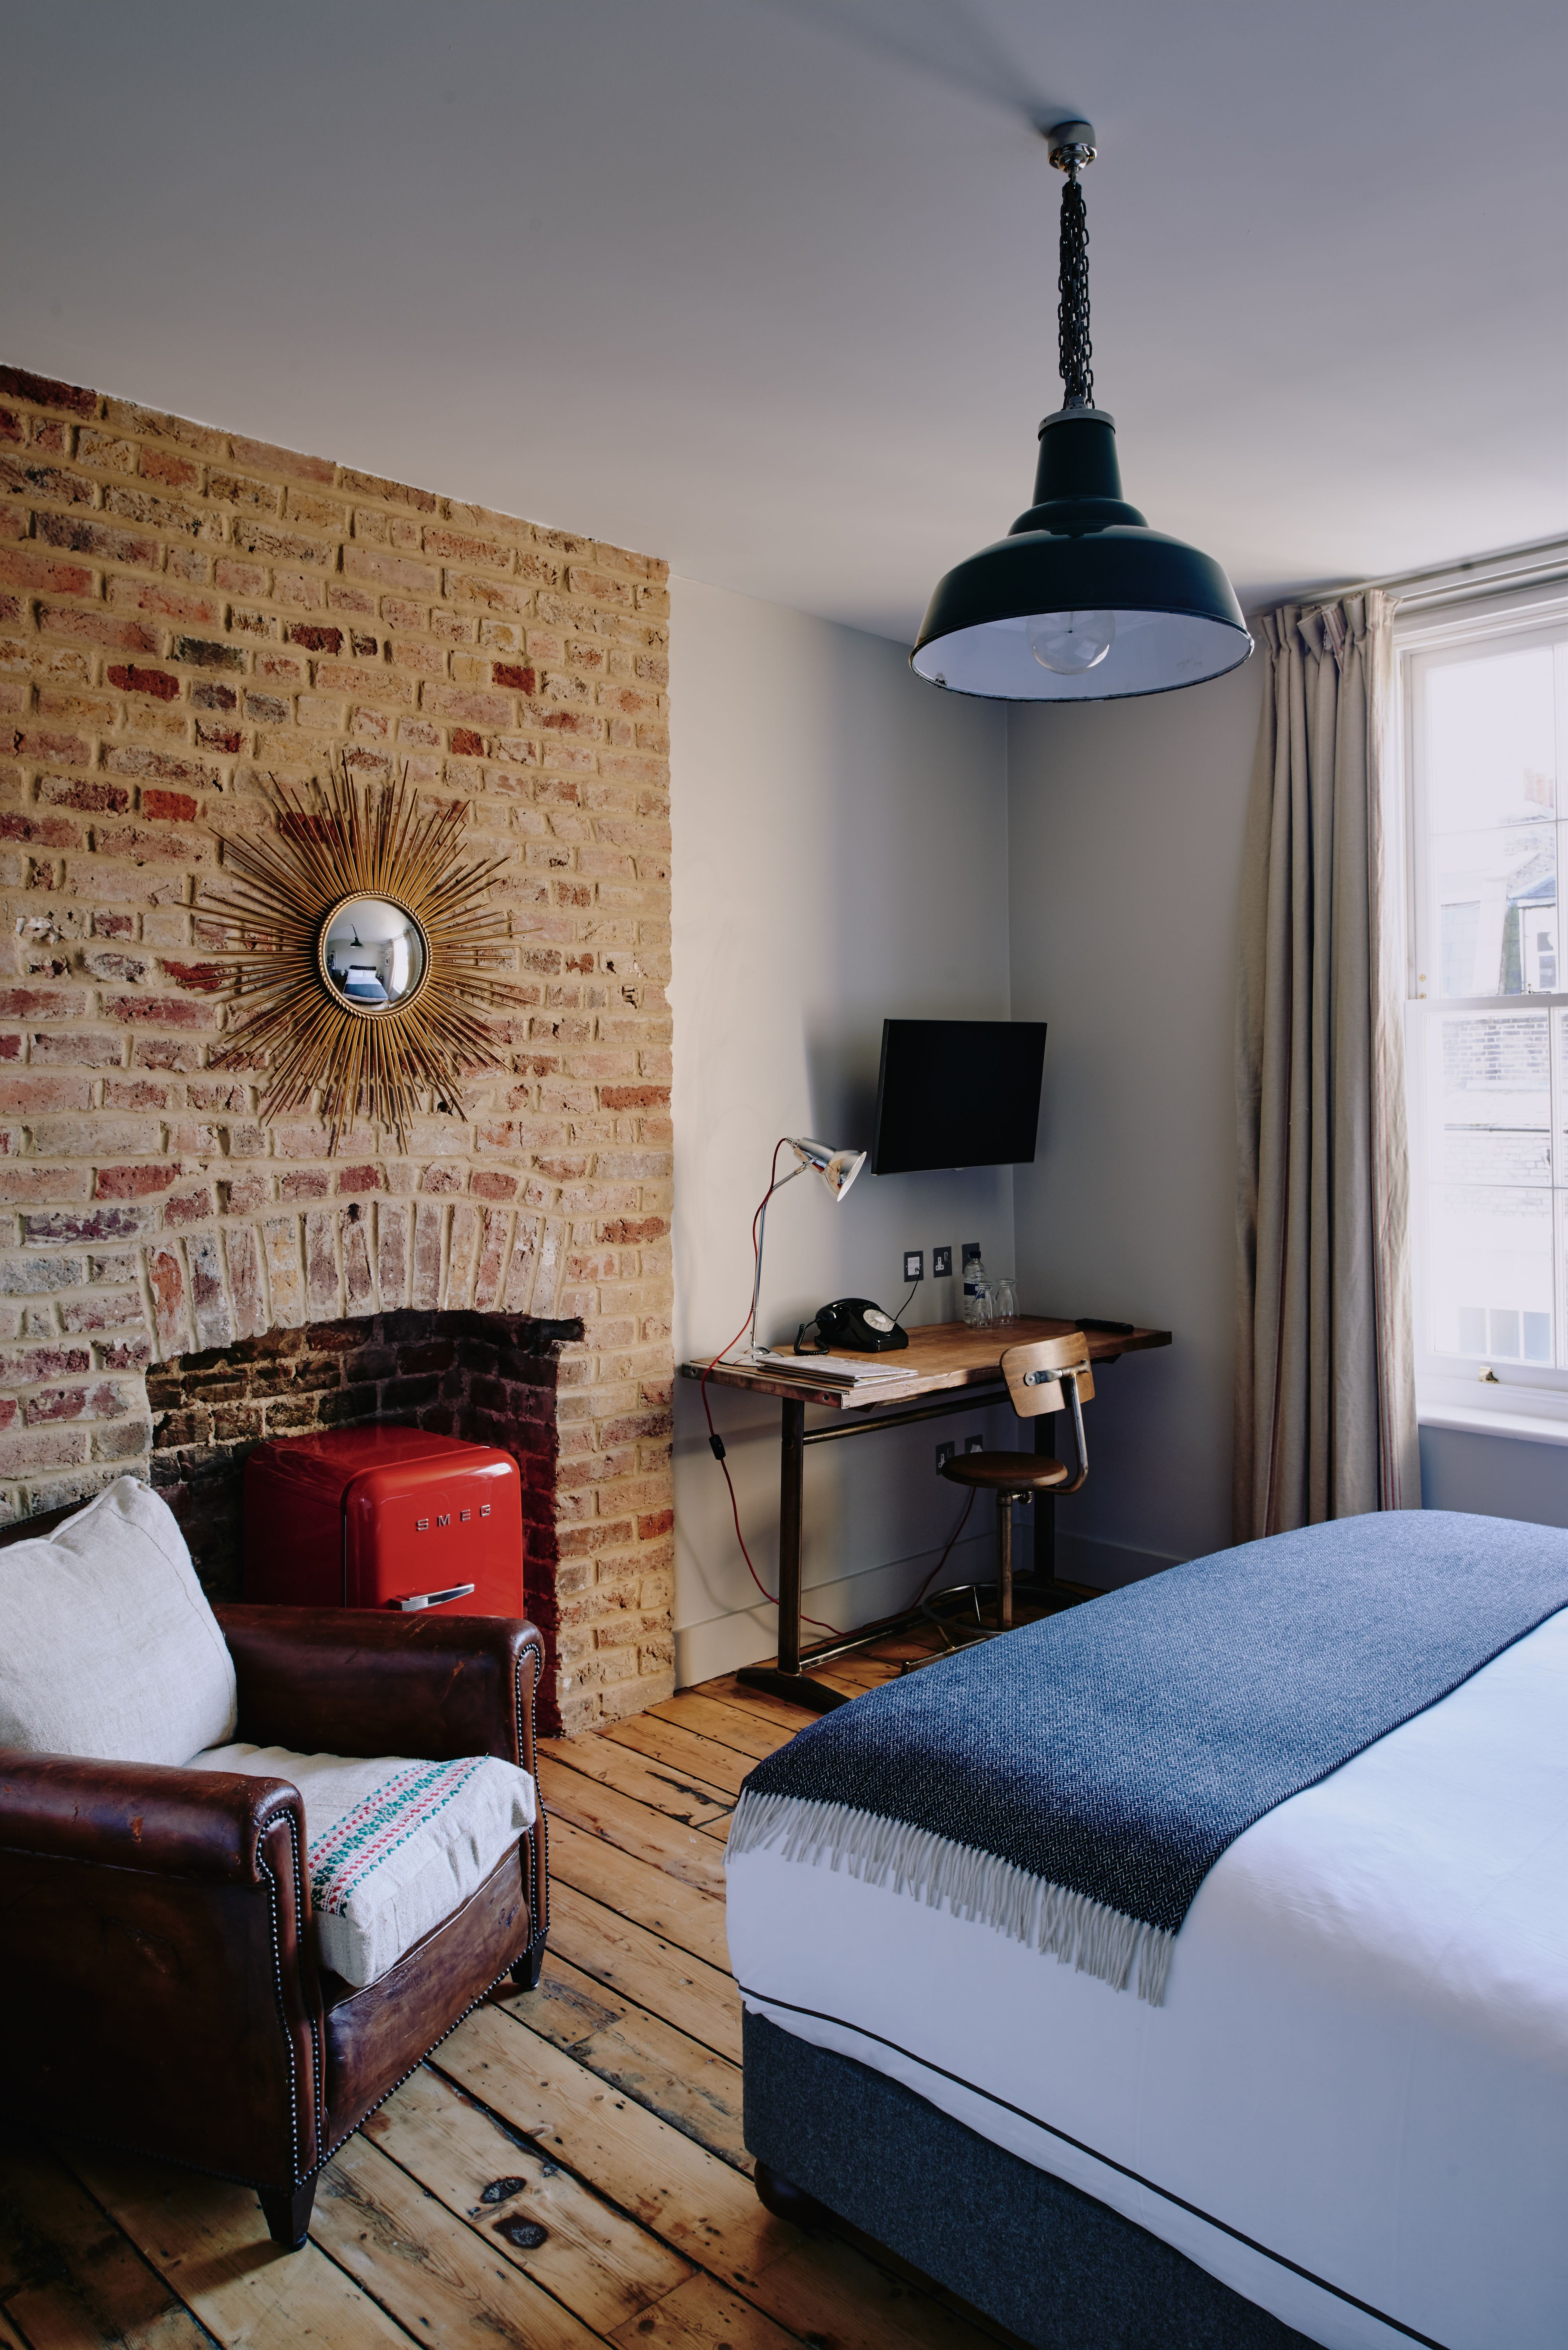 Artist residence london individually decorated rooms feature vintage furniture and wooden floors your pinterest would be jealous of